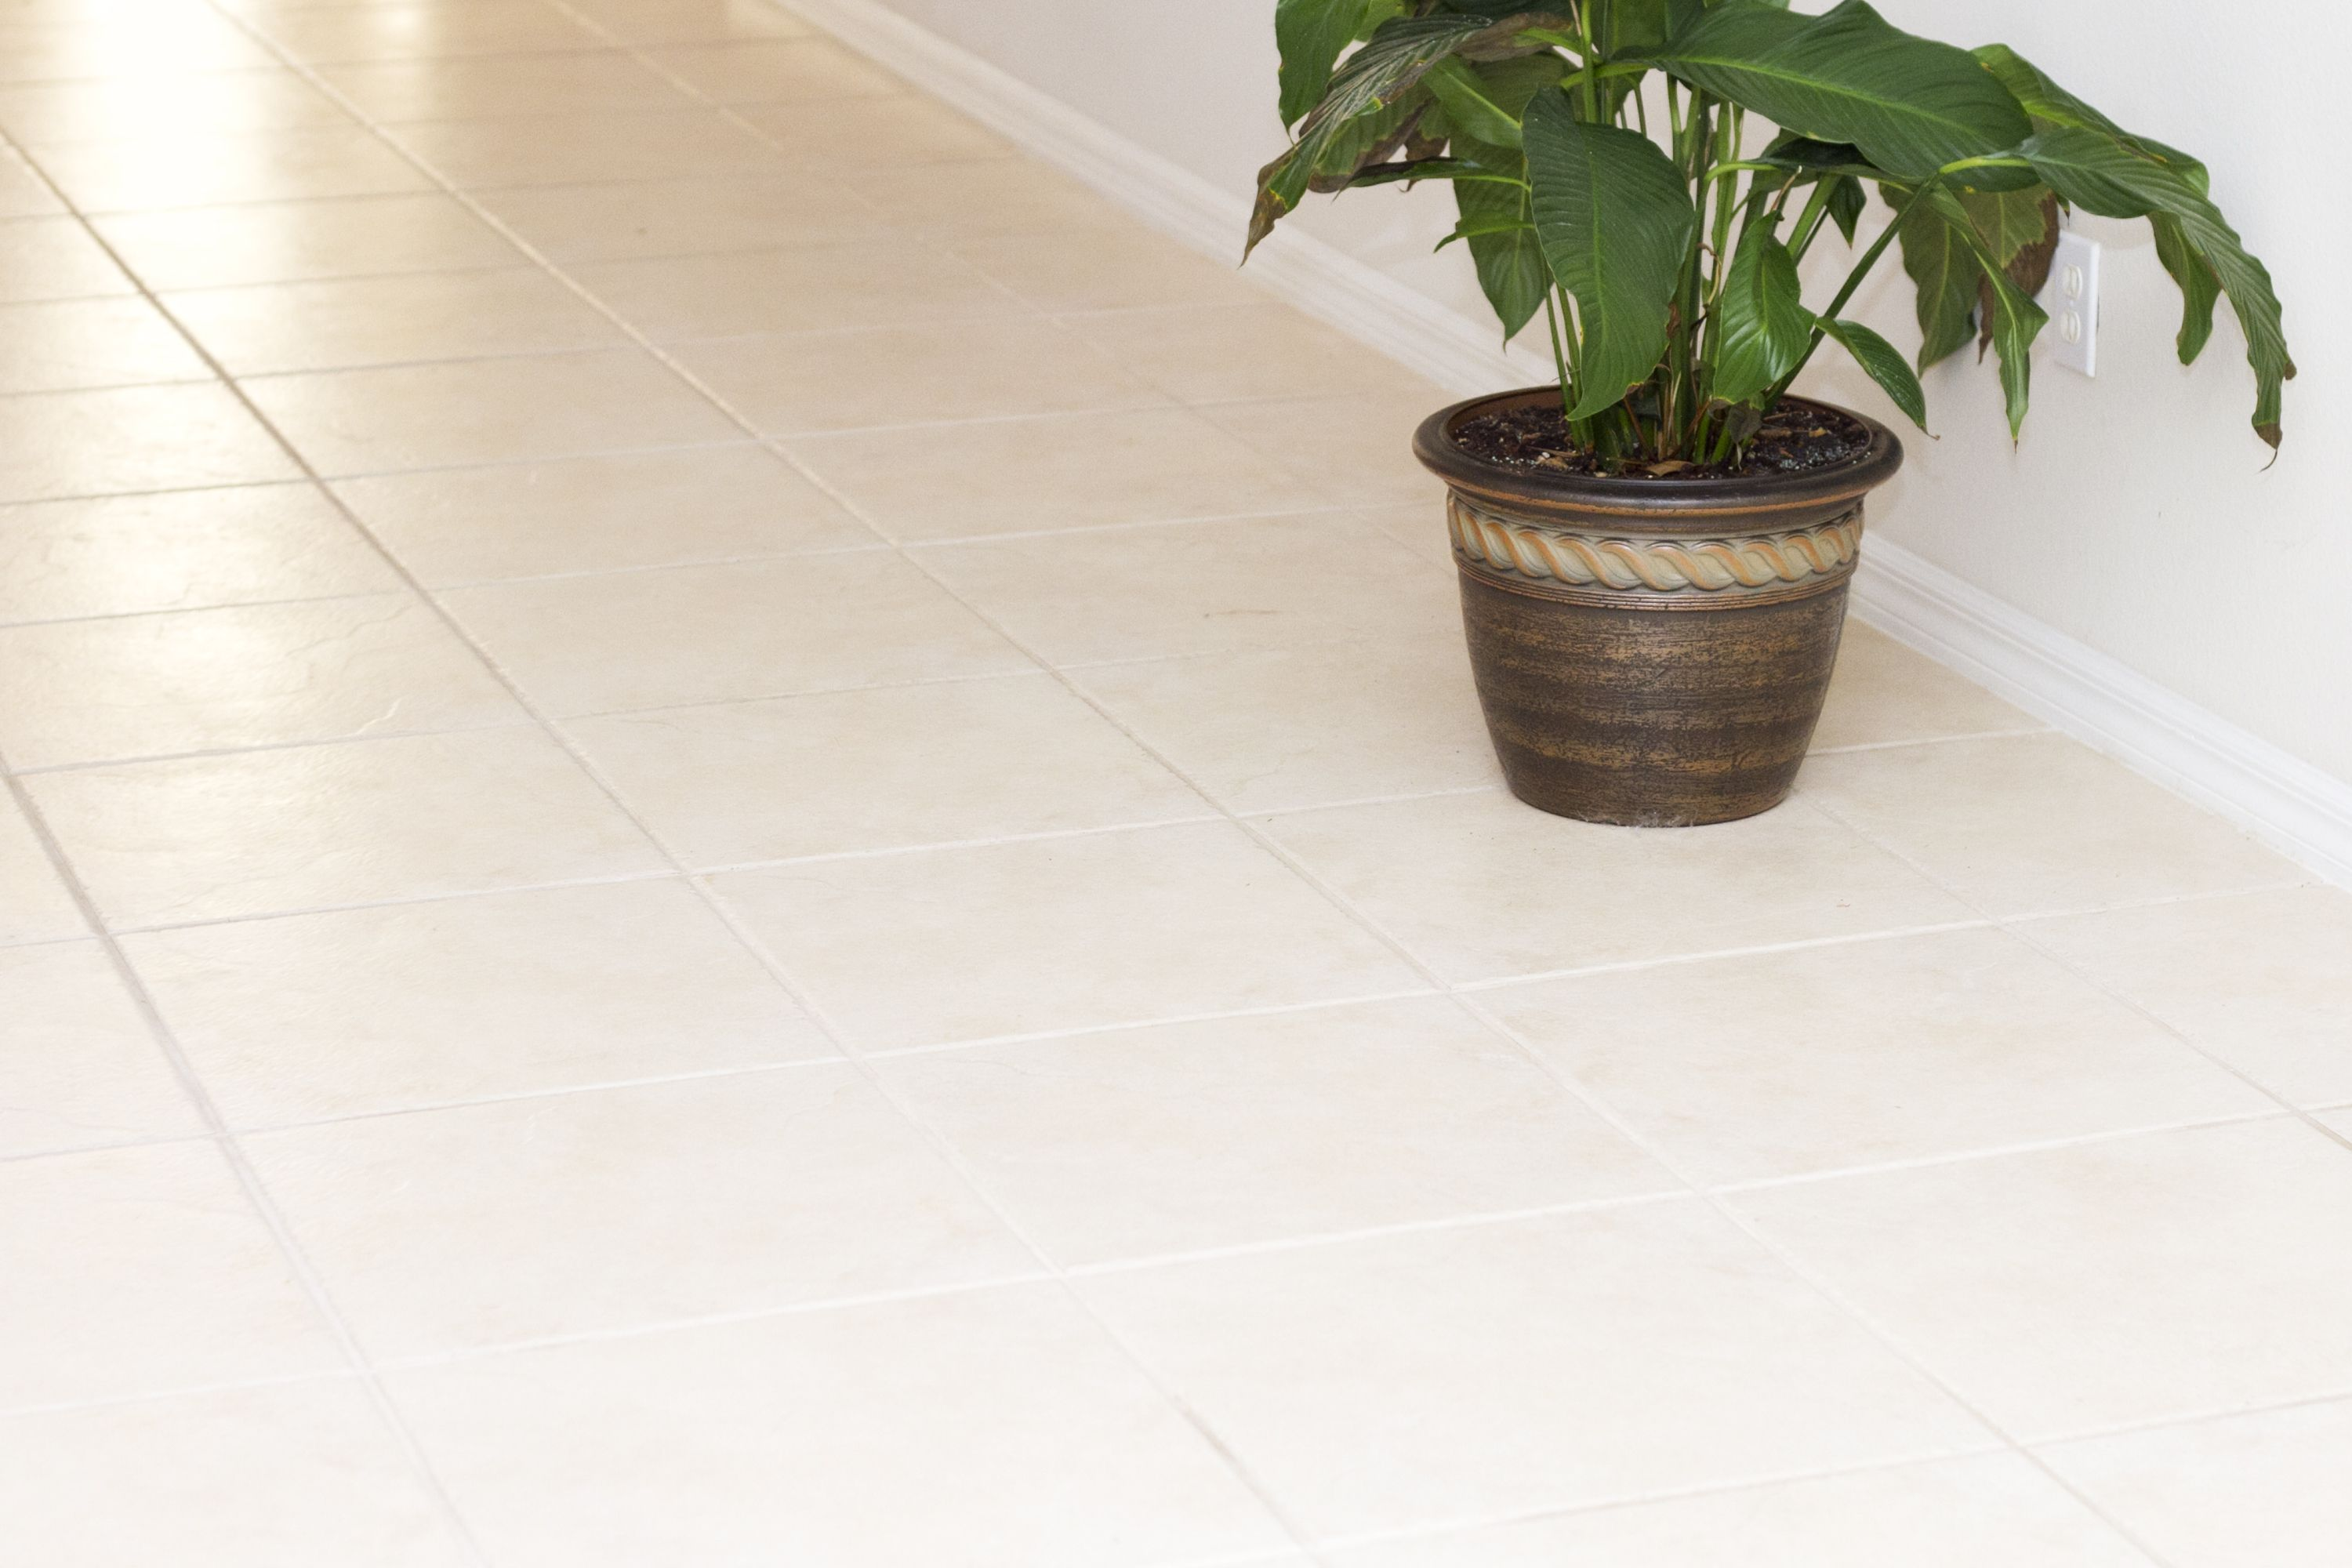 How To Use Vinegar For Cleaning Porcelain Or Tile Floors